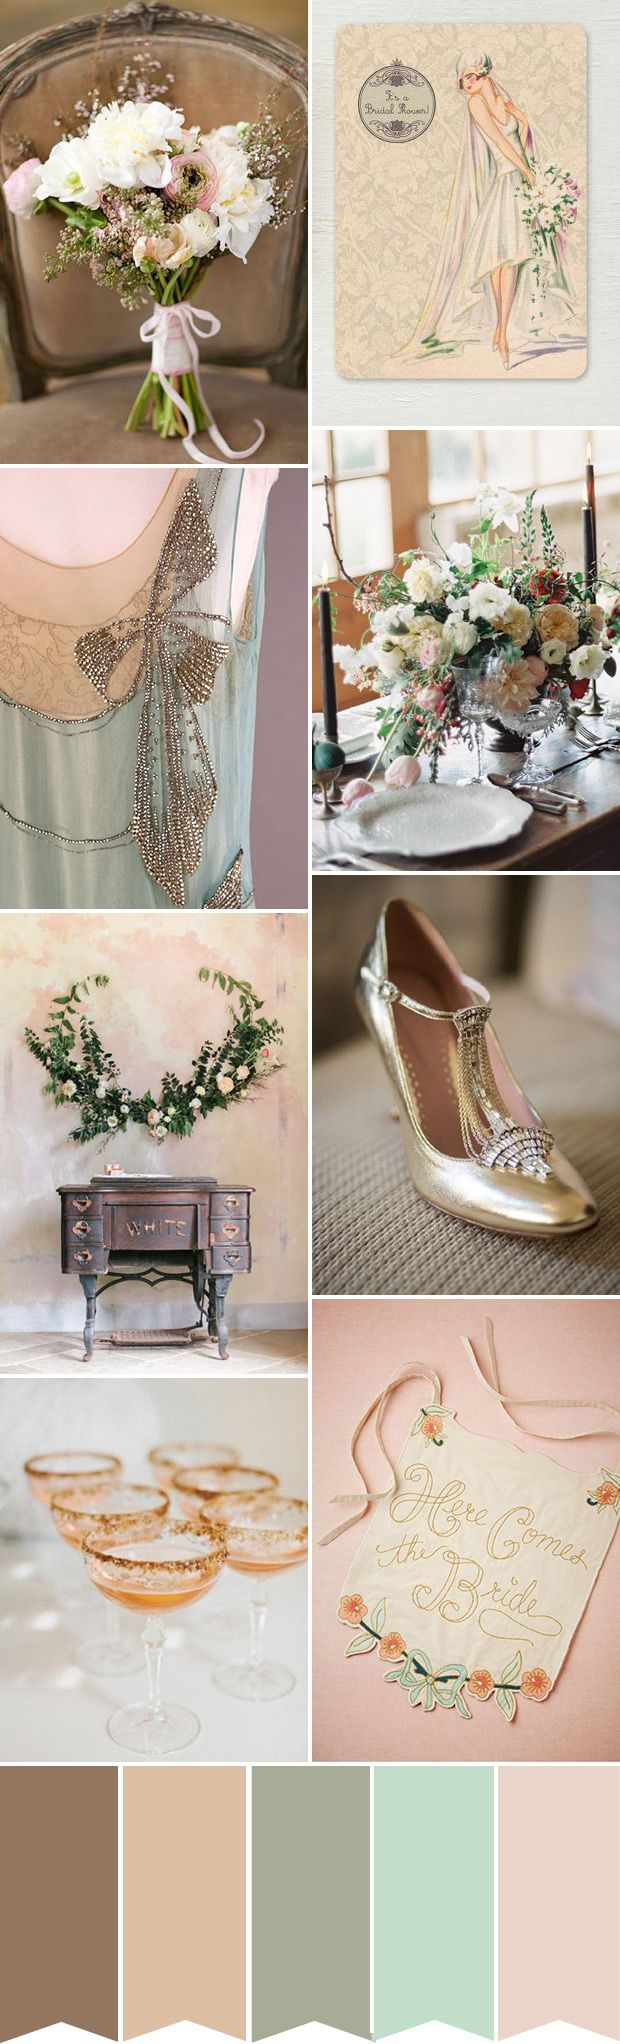 An 1920s inspired wedding colour palette with soft tones and gold accents | Found for you by www.astrabridal.co.nz |